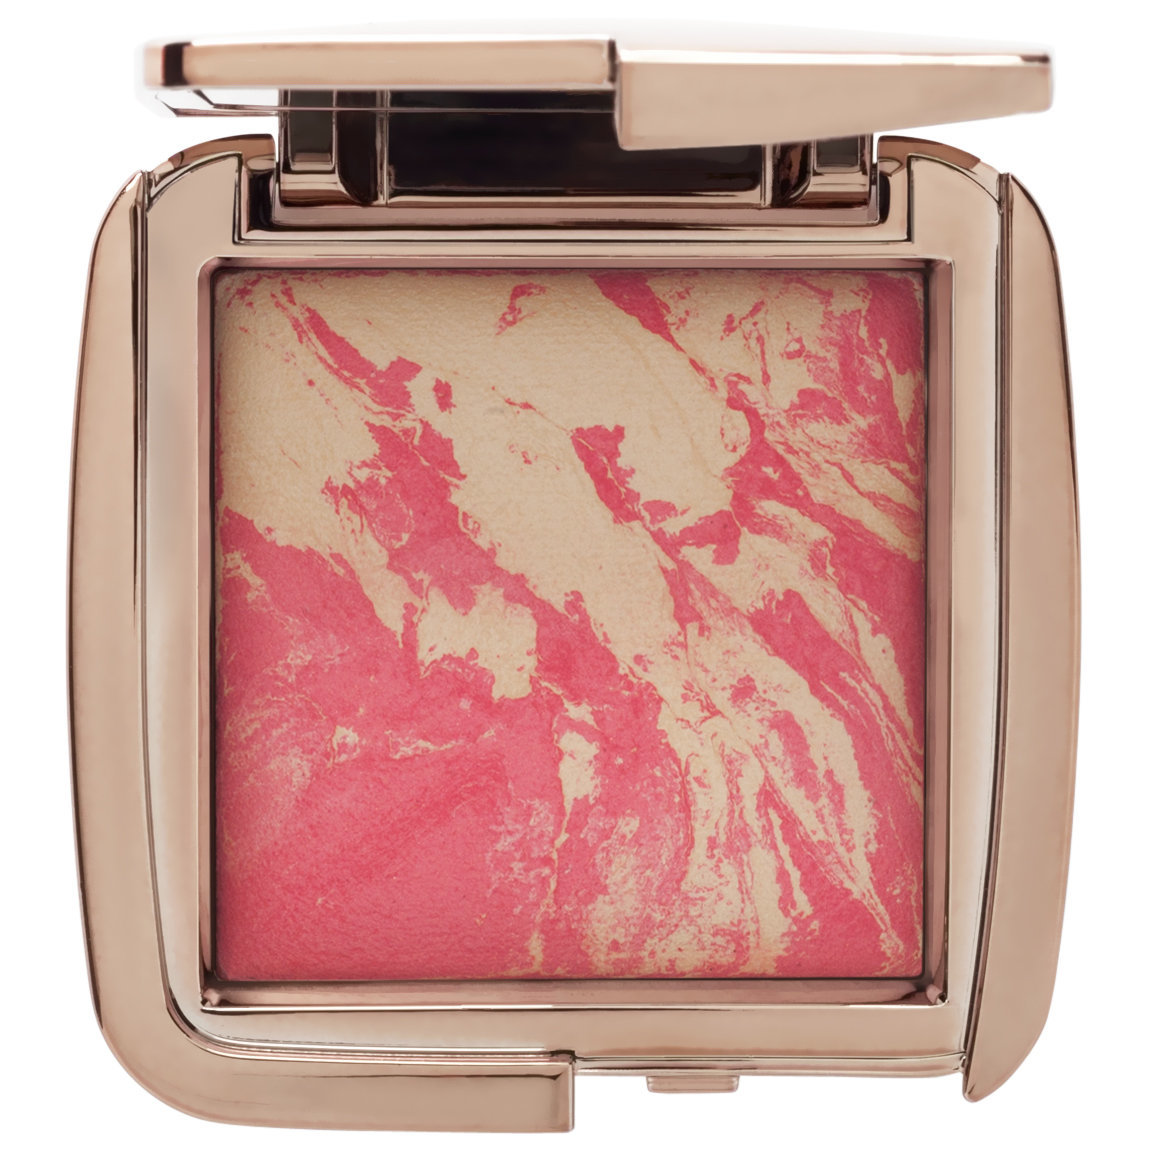 Hourglass Ambient Lighting Blush Diffused Heat product smear.